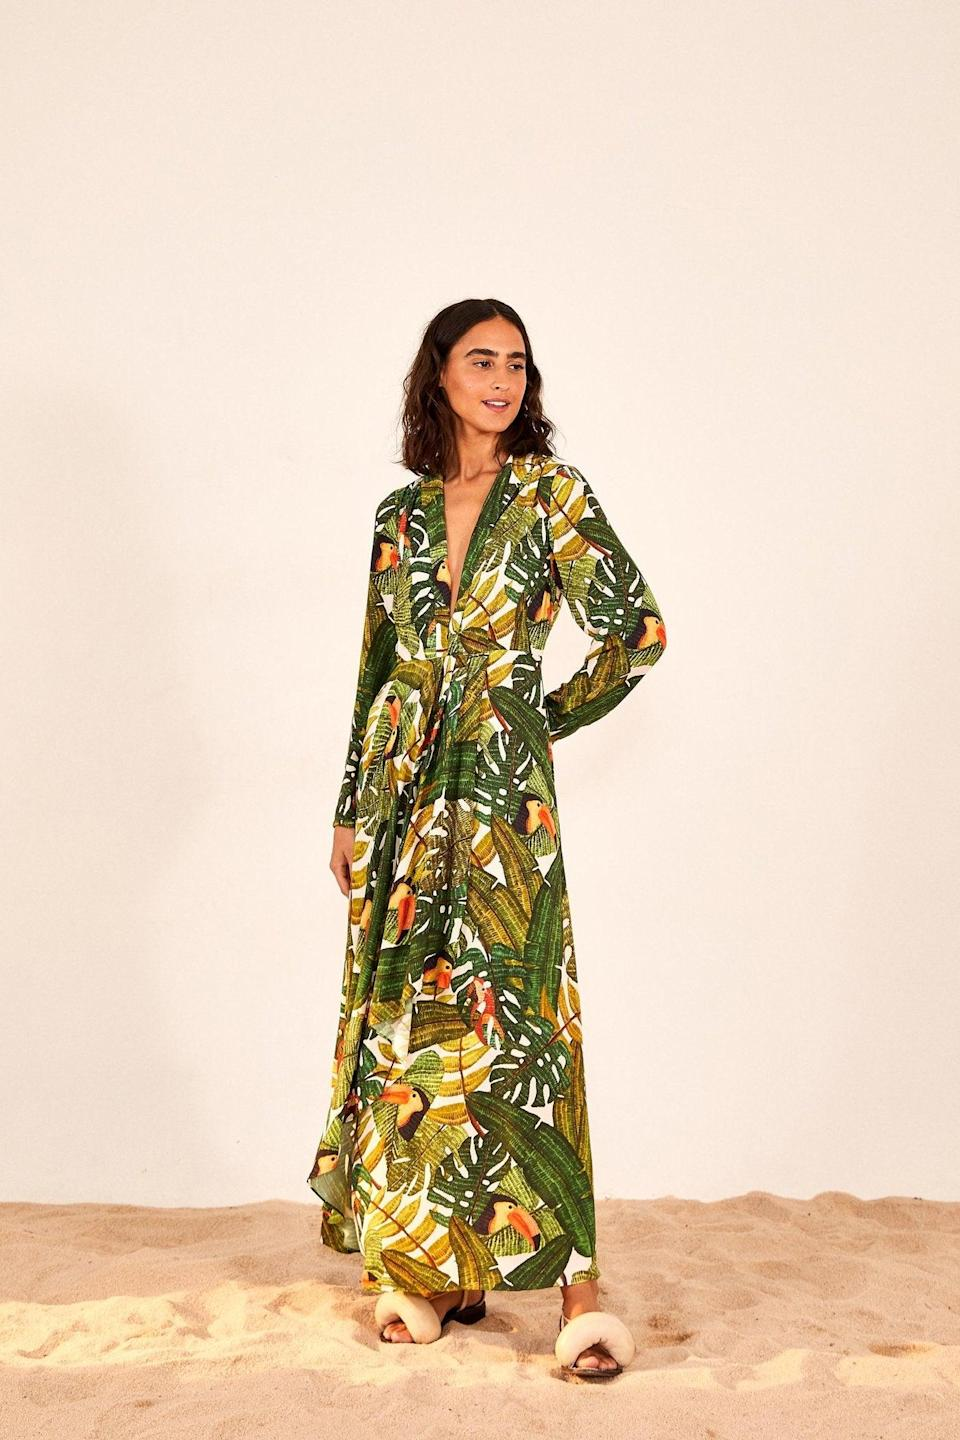 """<br><br><strong>Farm Rio</strong> Paradise Forest Maxi Dress, $, available at <a href=""""https://go.skimresources.com/?id=30283X879131&url=https%3A%2F%2Fwww.farmrio.com%2Fcollections%2Fsale%2Fproducts%2Fparadise-forest-maxi-dress"""" rel=""""nofollow noopener"""" target=""""_blank"""" data-ylk=""""slk:Farm Rio"""" class=""""link rapid-noclick-resp"""">Farm Rio</a>"""